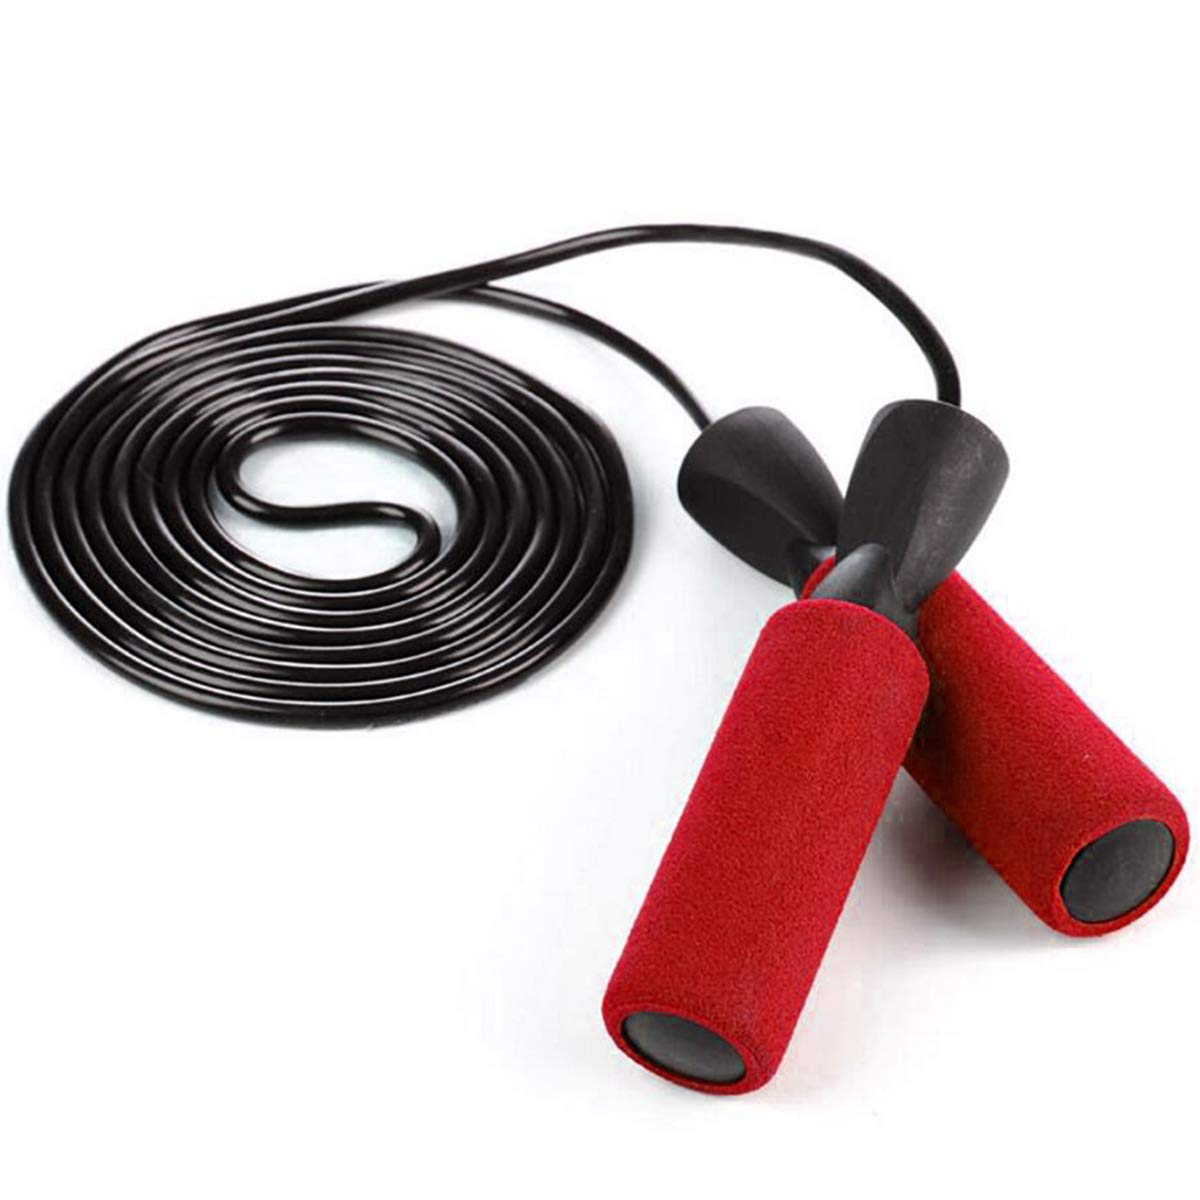 Easily Adjustable Gym /& More Home Workouts OPII Jump Rope Experience Levels Comfortable Anti-Slip Handles for Kids and Adults! Cross Fitness Weight-Loss Cardio